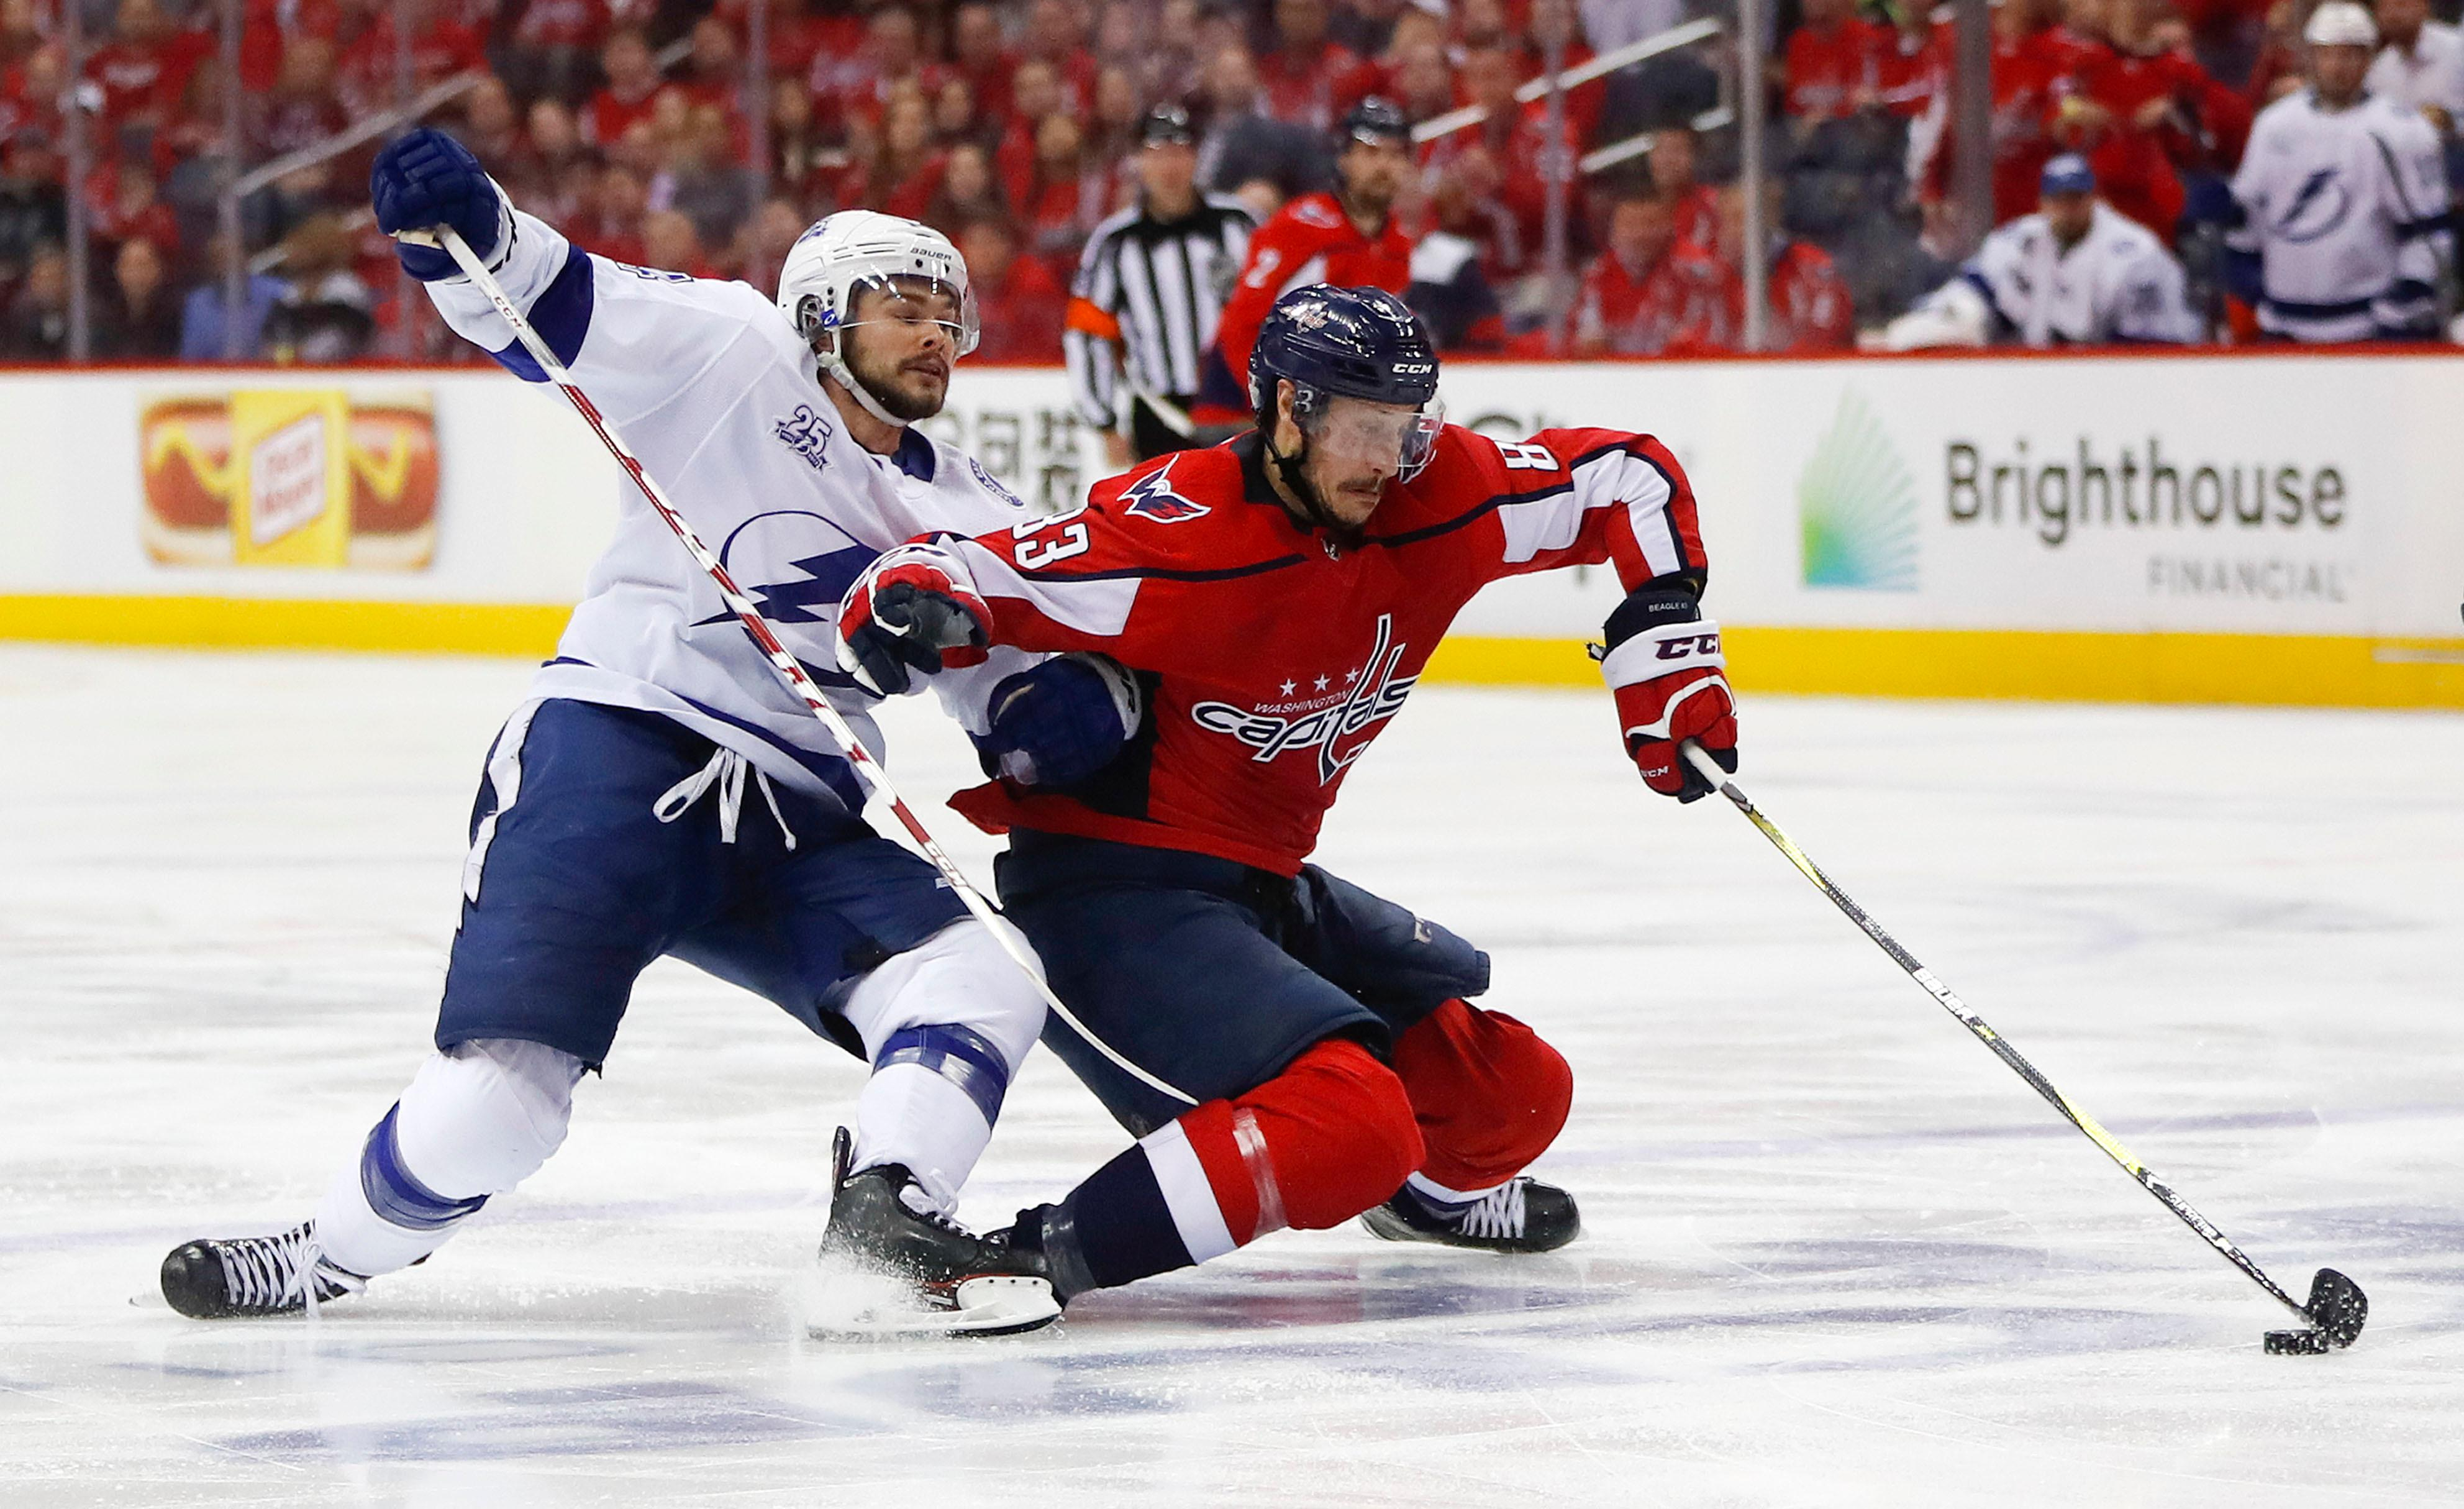 Washington Capitals center Jay Beagle (83) keeps Tampa Bay Lightning left wing Chris Kunitz (14) away from the puck during the second period of Game 6 of the NHL Eastern Conference finals hockey playoff series, Monday, May 21, 2018, in Washington. (AP Photo/Pablo Martinez Monsivais)